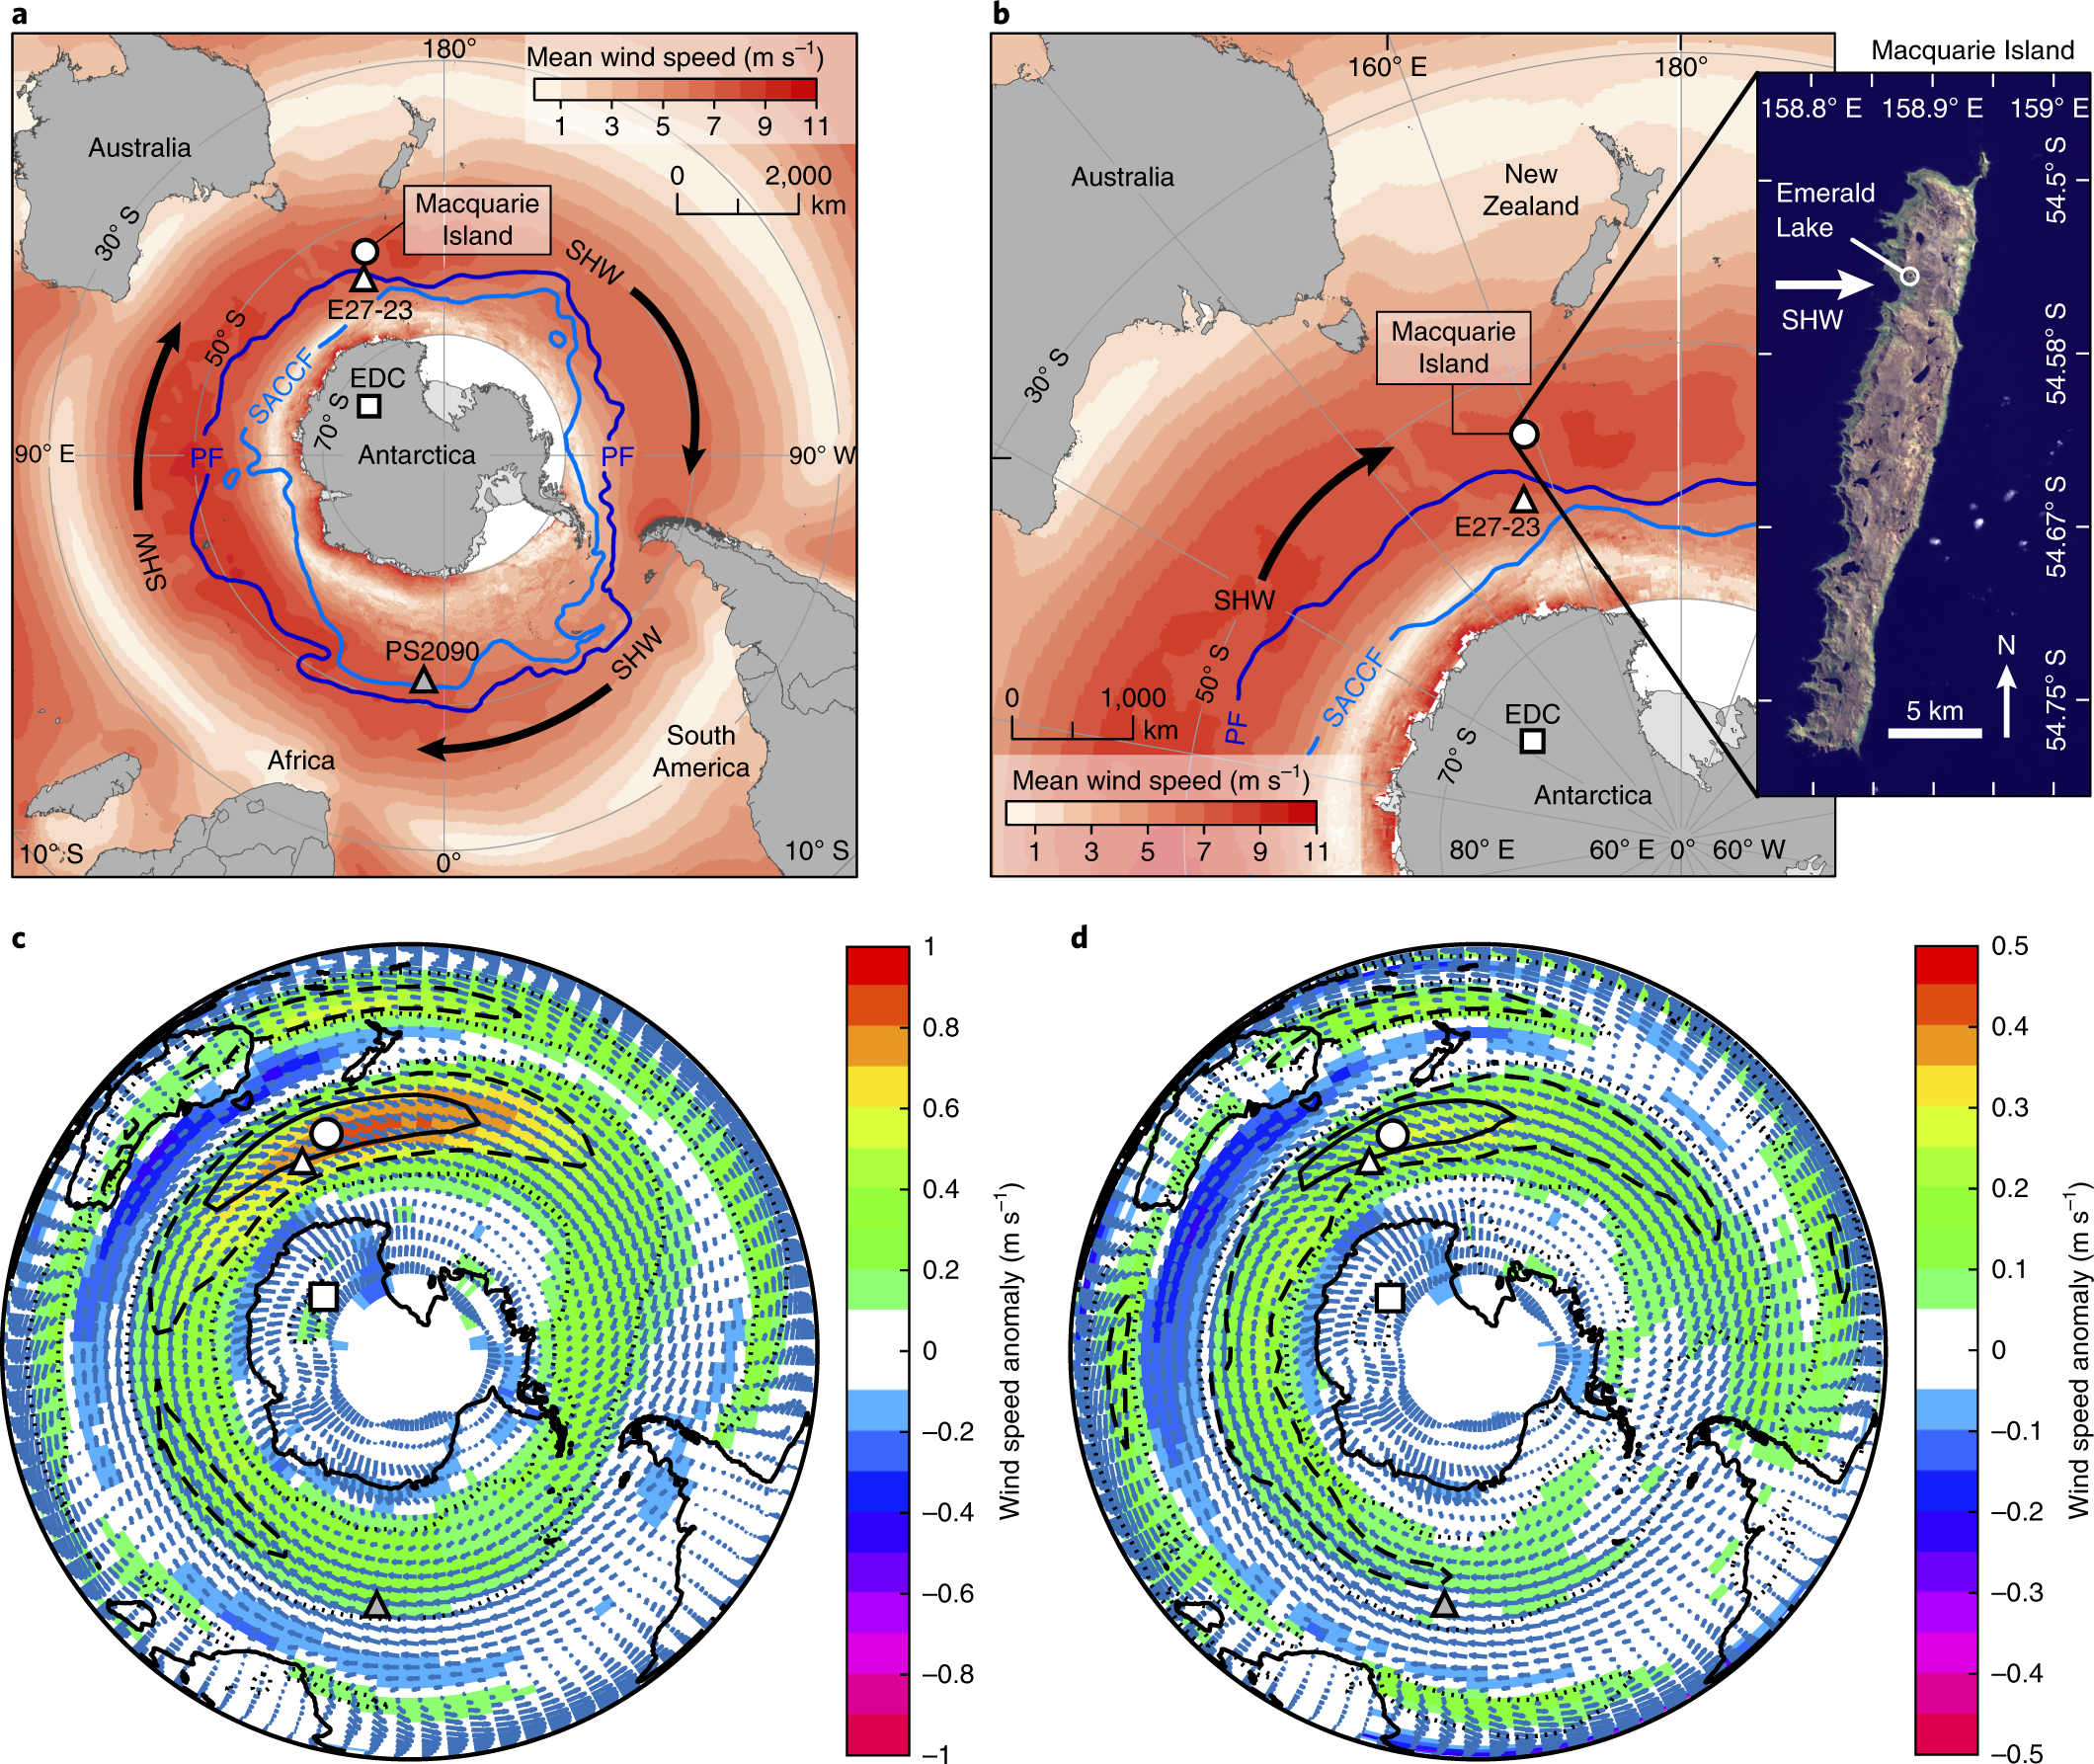 Holocene dynamics of the Southern Hemisphere westerly winds and